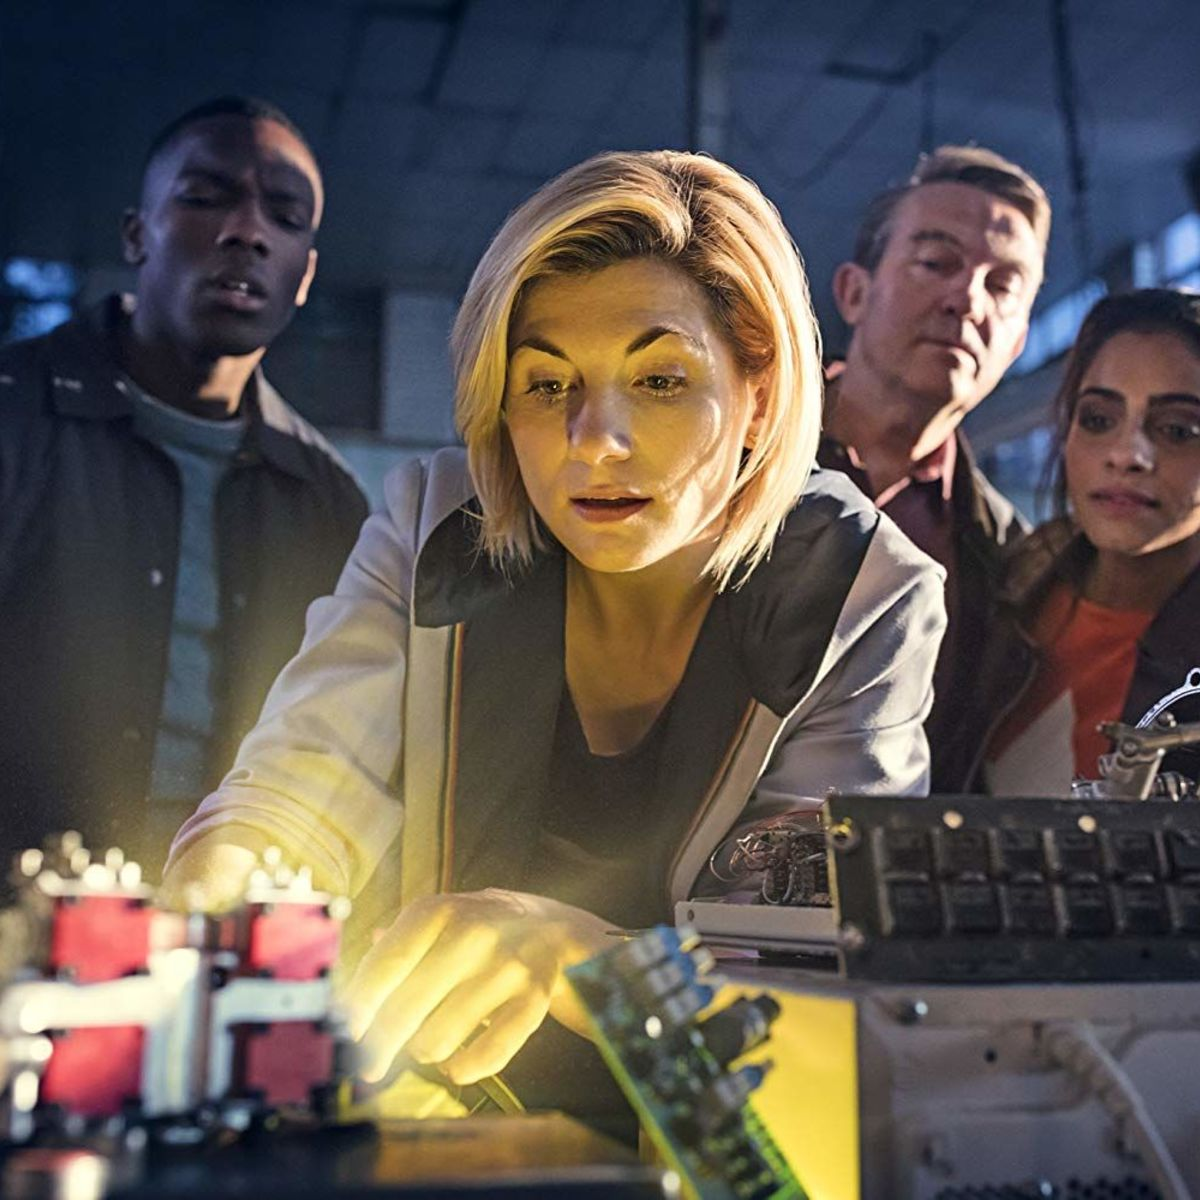 Doctor Who Season 12 Will Arrive in Early 2020